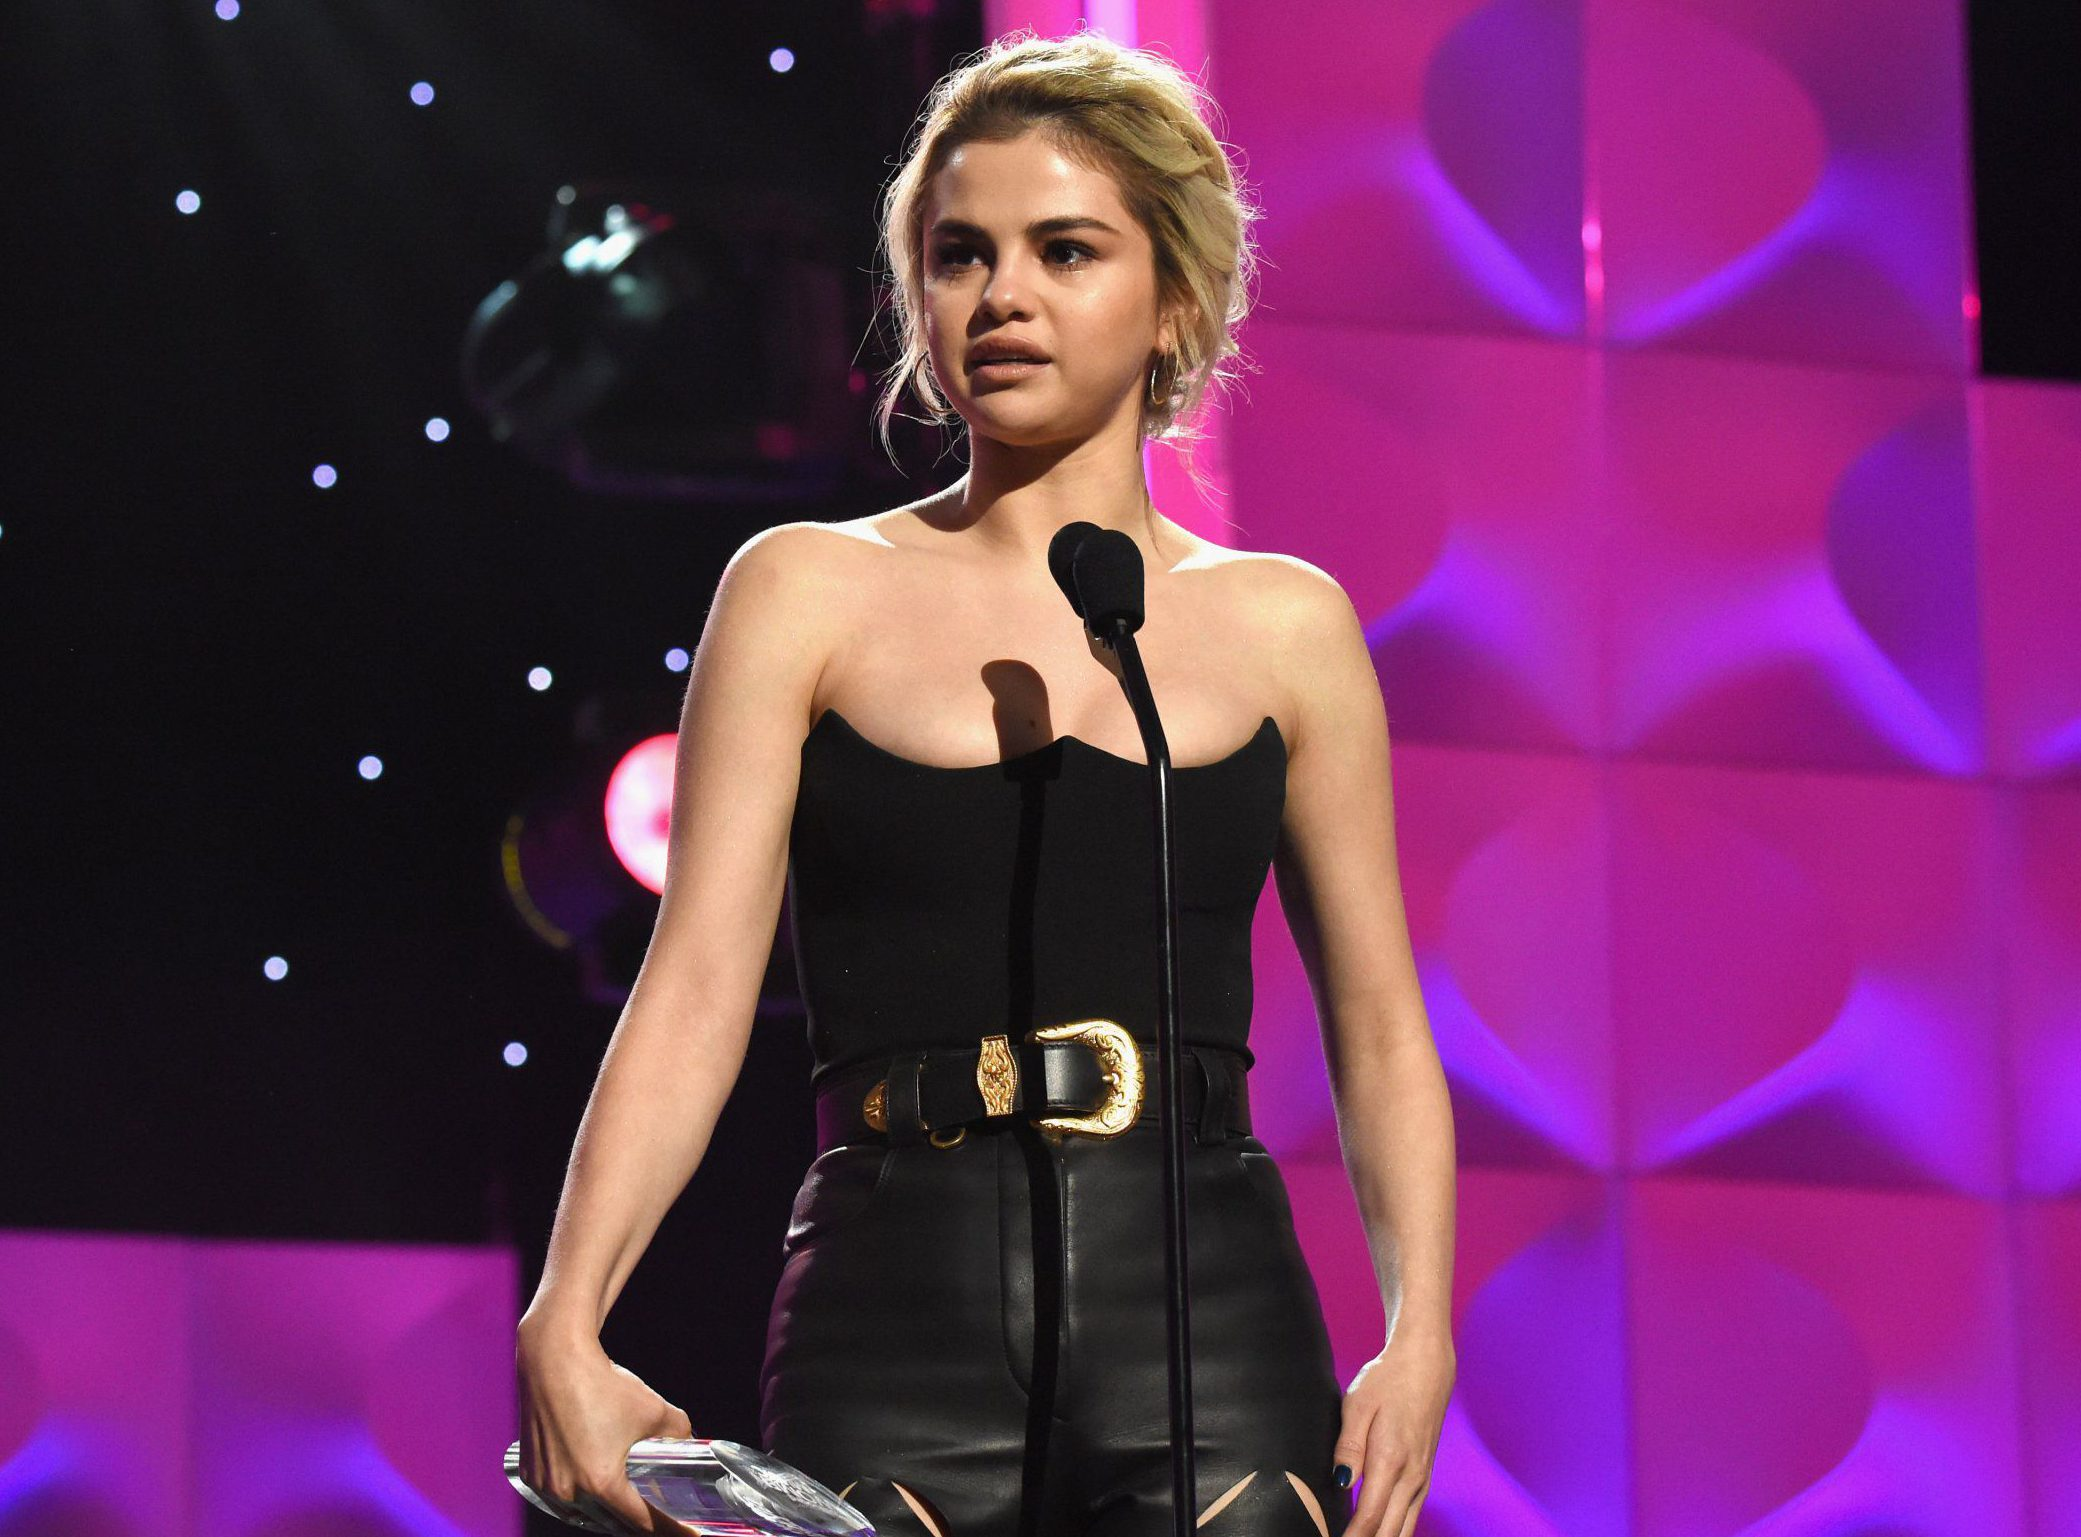 Selena Gomez 'will battle depression for the rest of her life'